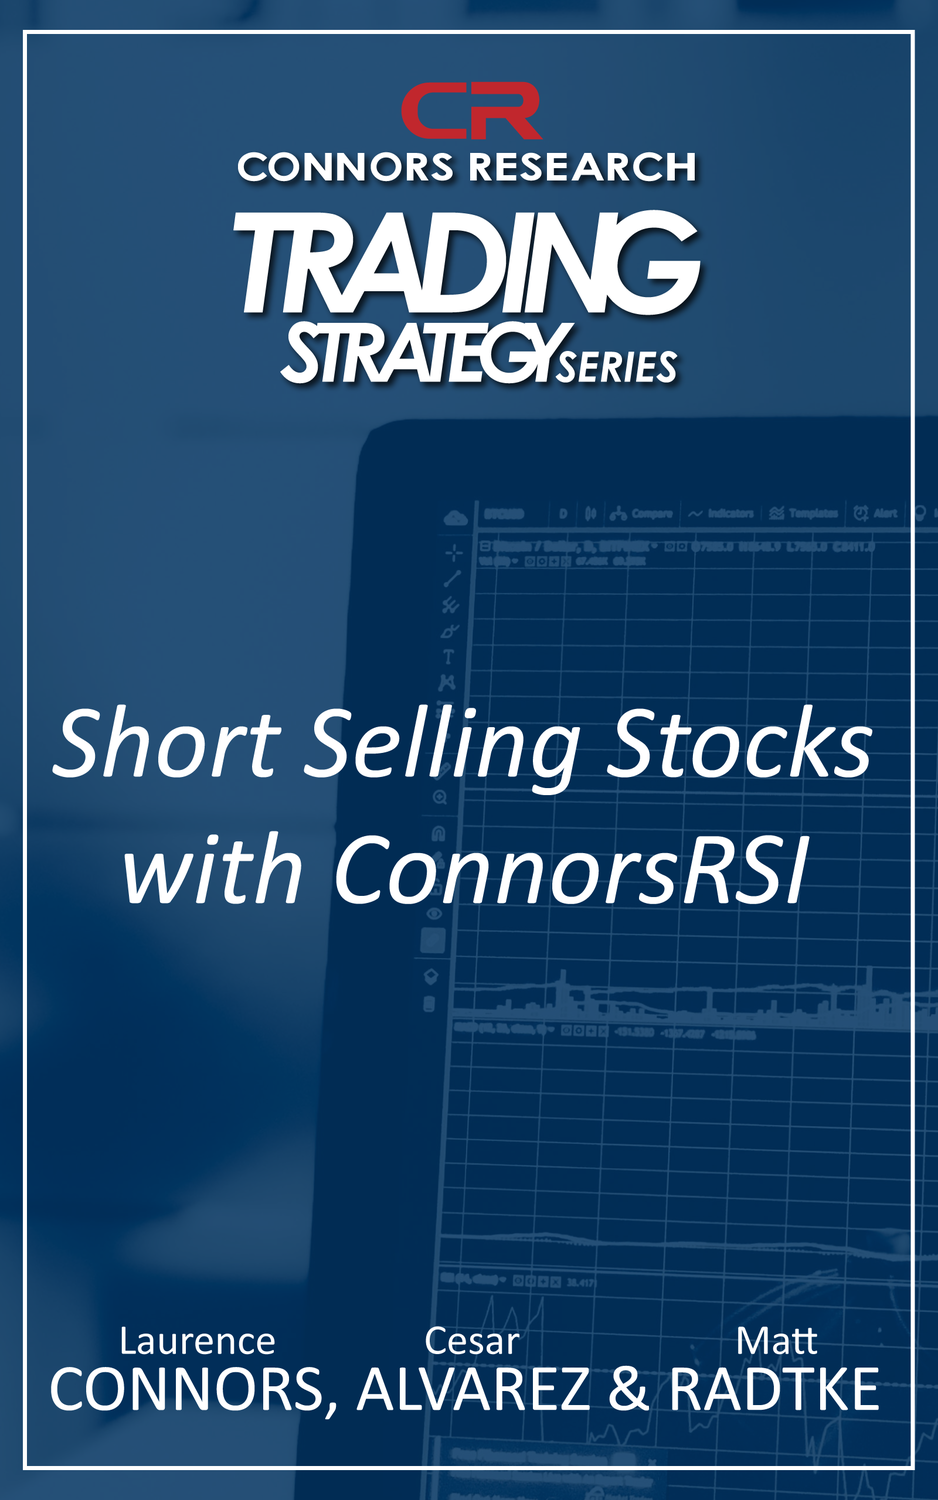 Connors Research Trading Strategy Series: Short Selling Stocks with ConnorsRSI